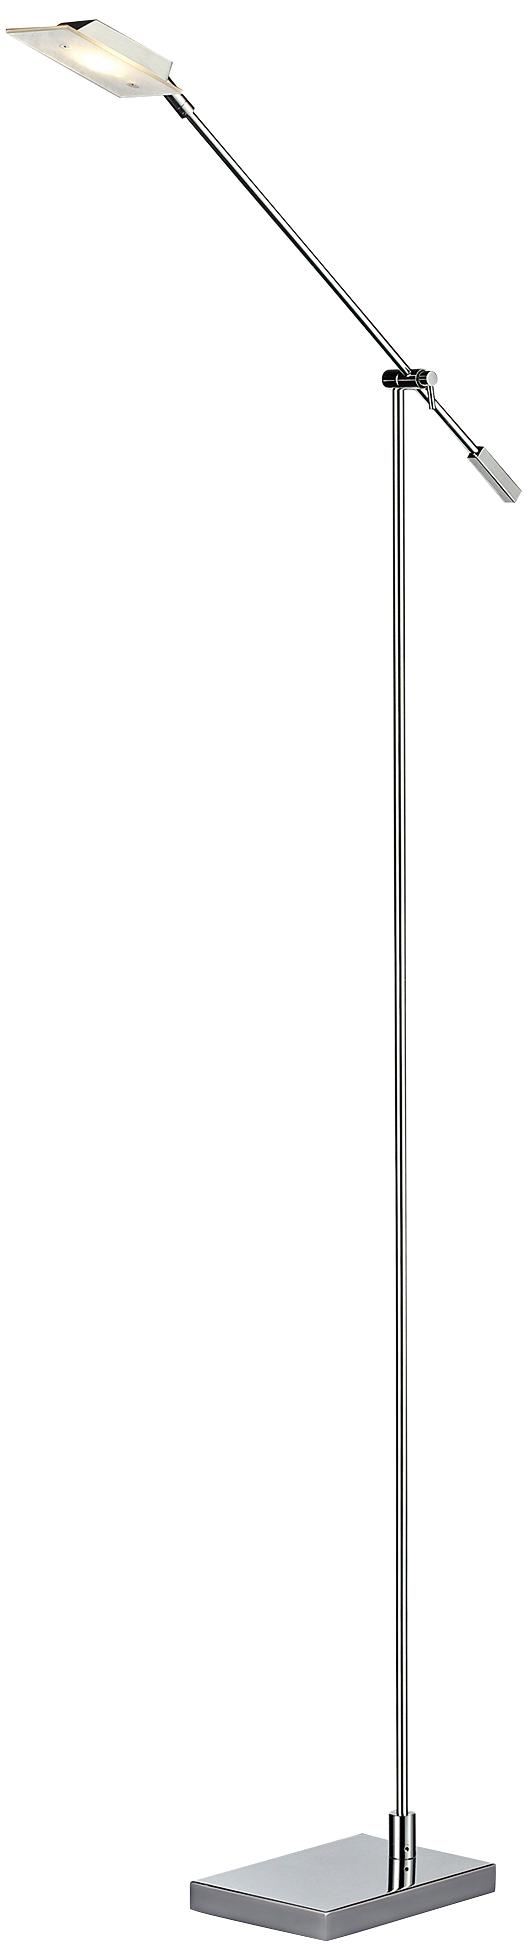 Dimond Bibliotheque Chrome LED Floor Lamp (7R964)